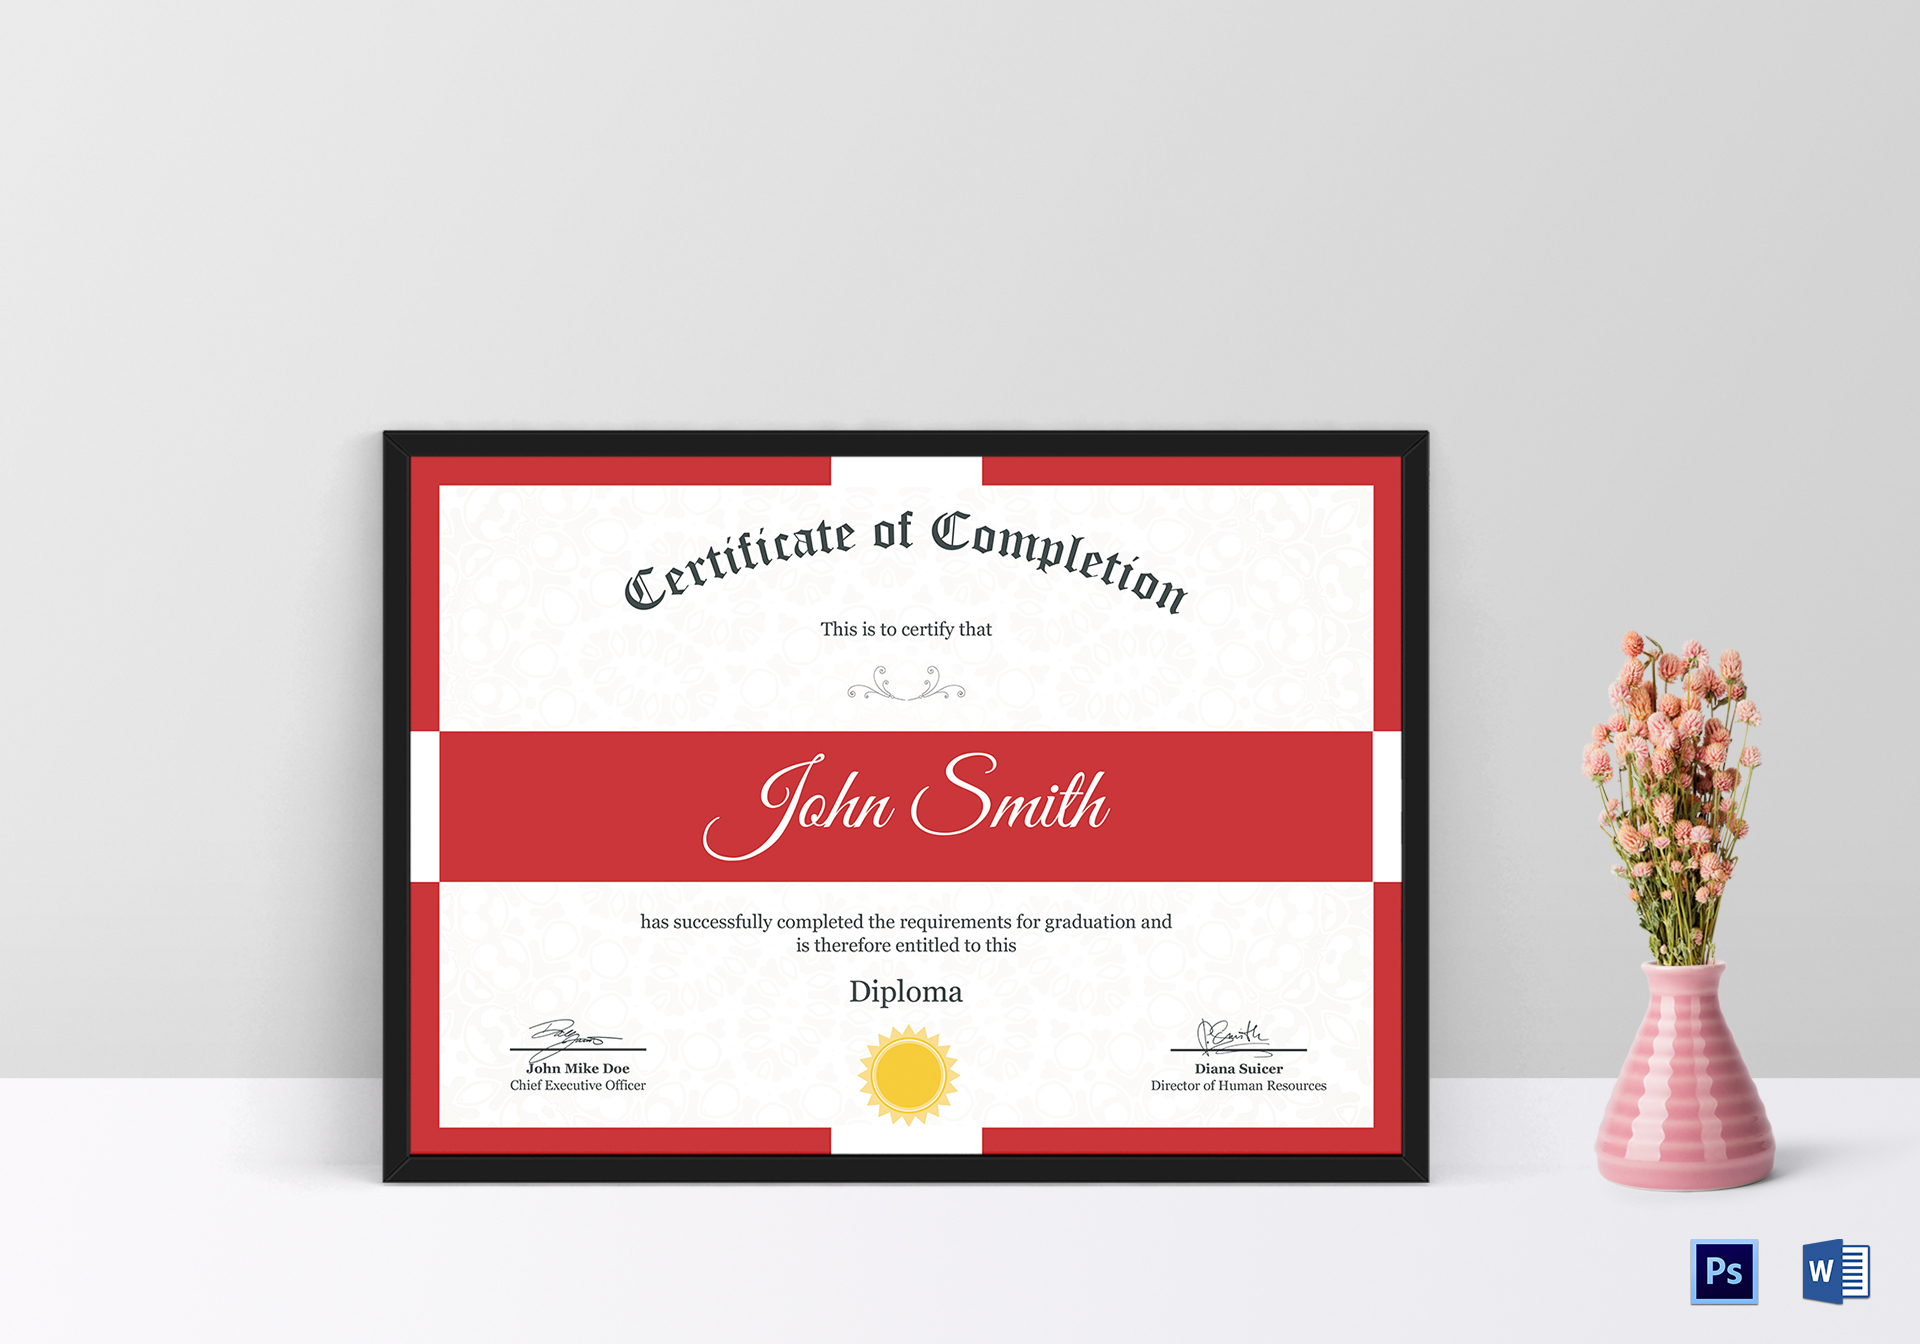 Diploma Completion Certificate